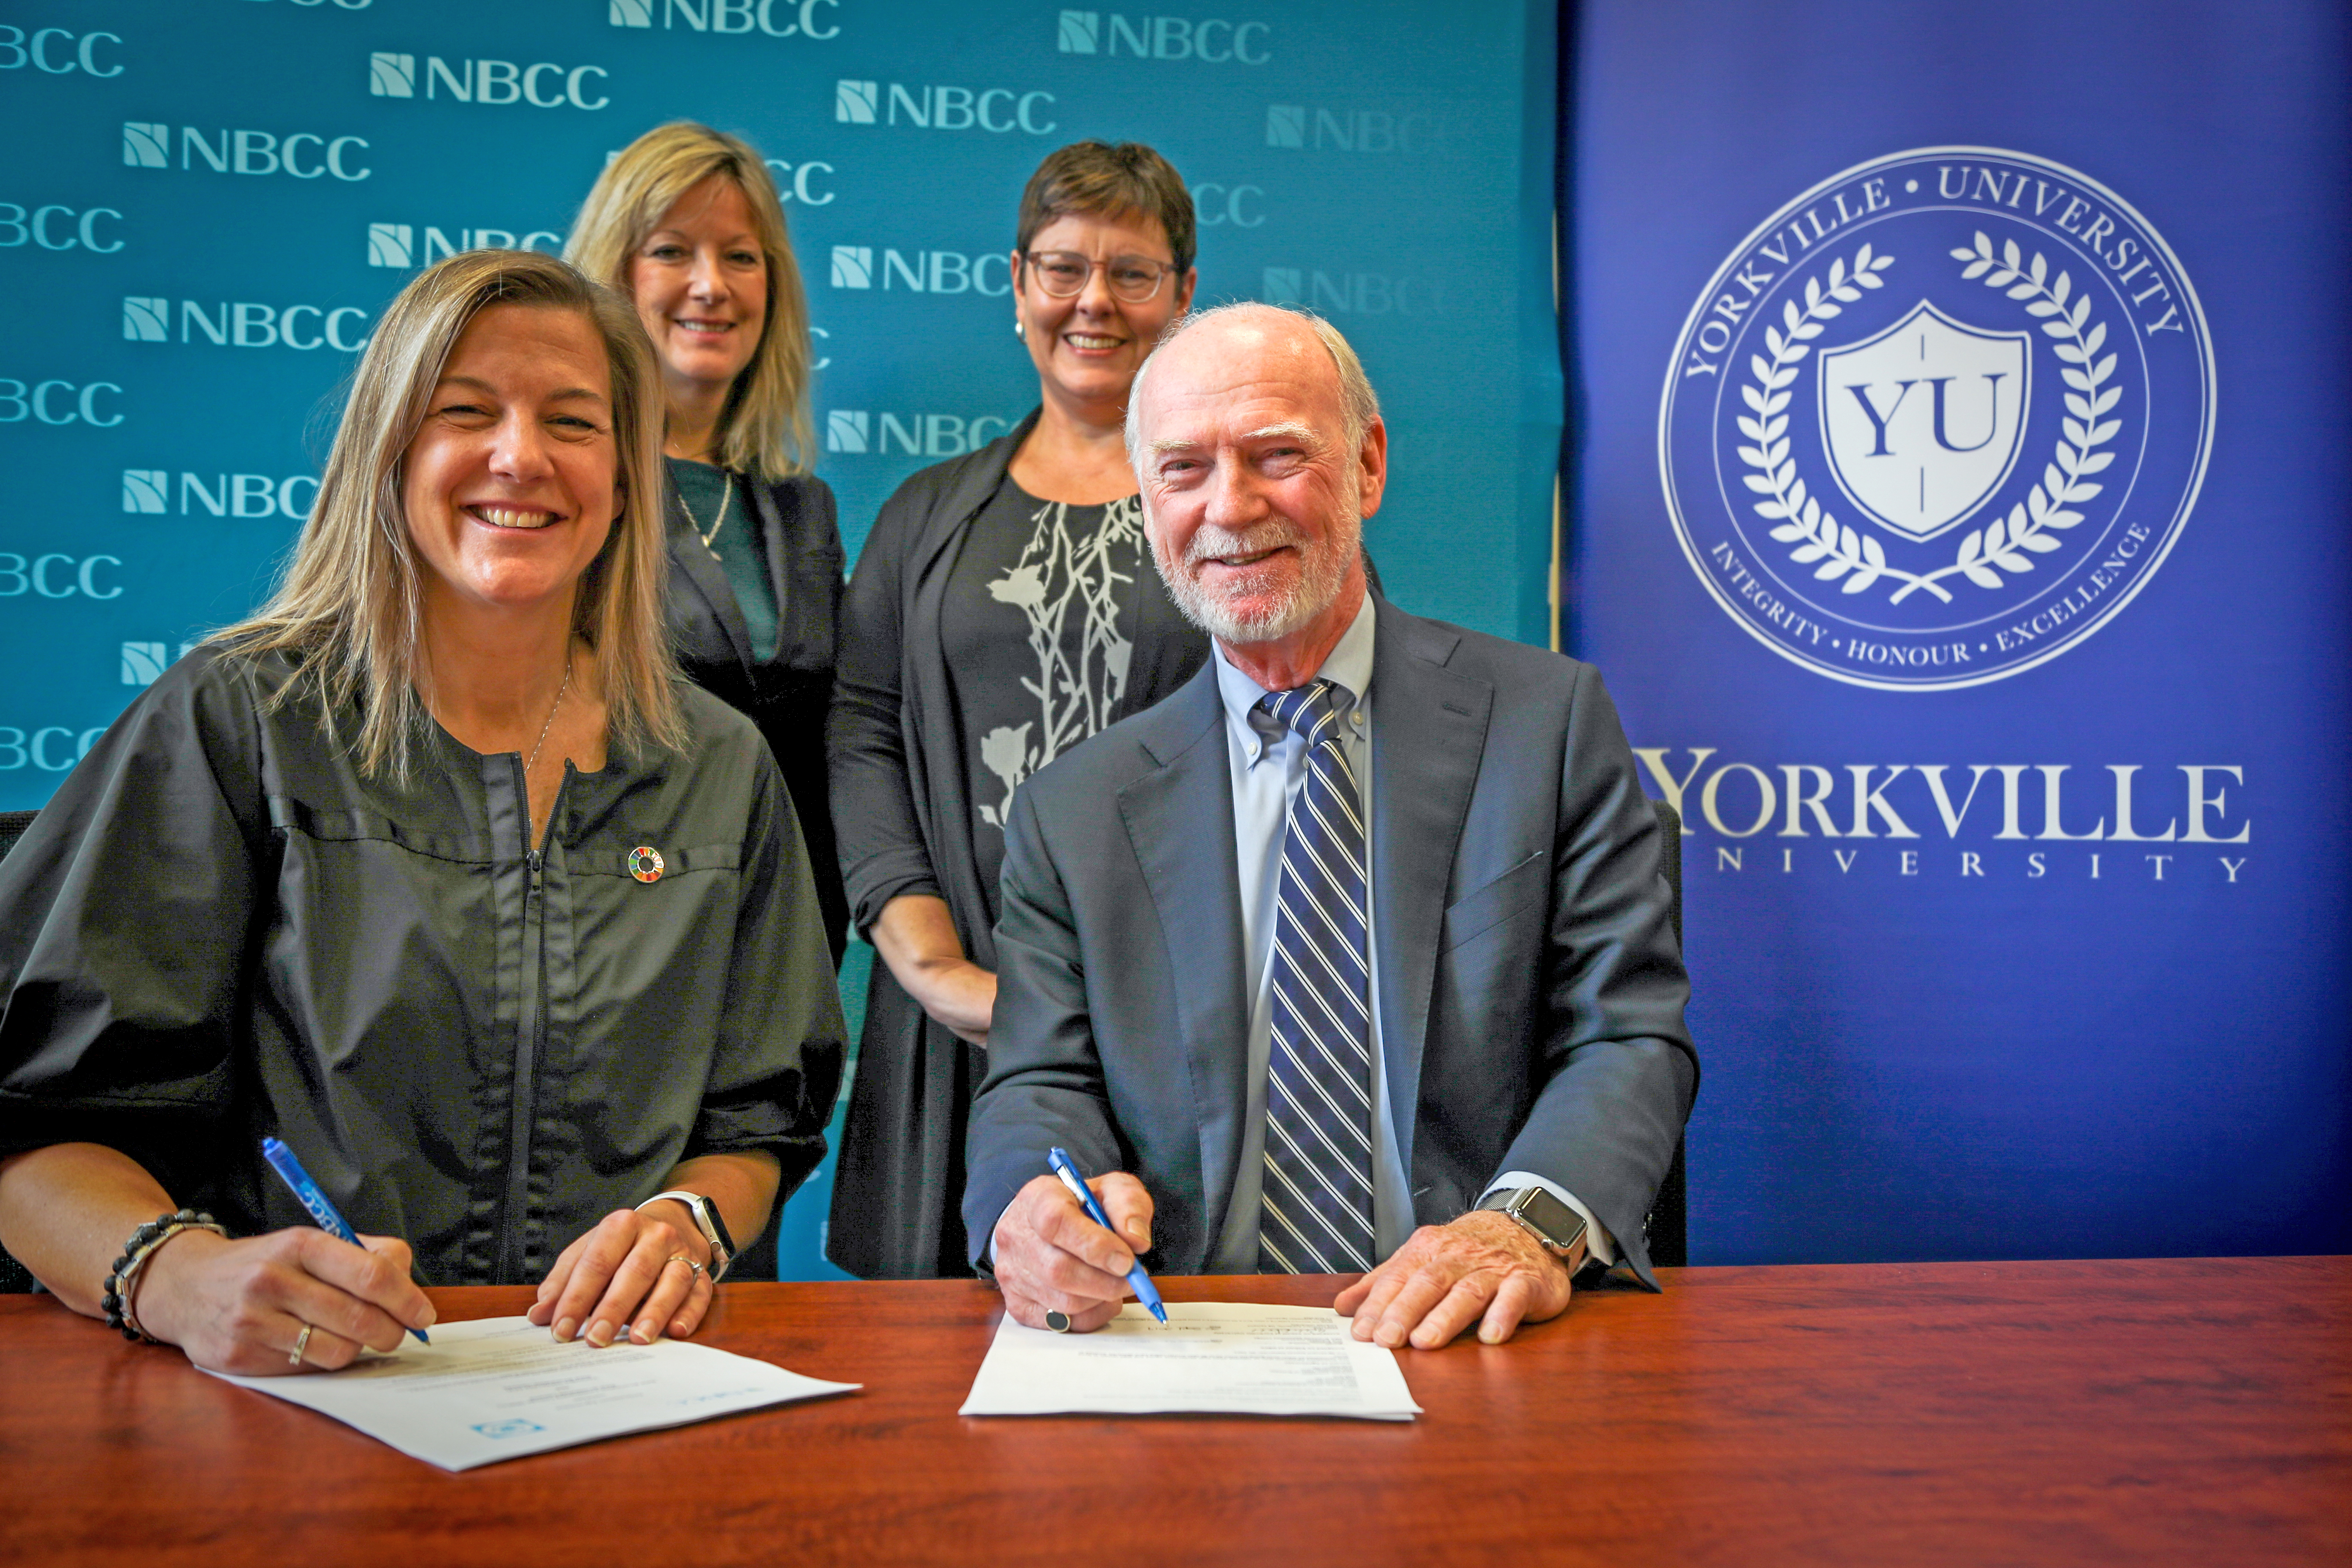 NBCC and Yorkville University agree to new business degree pathway